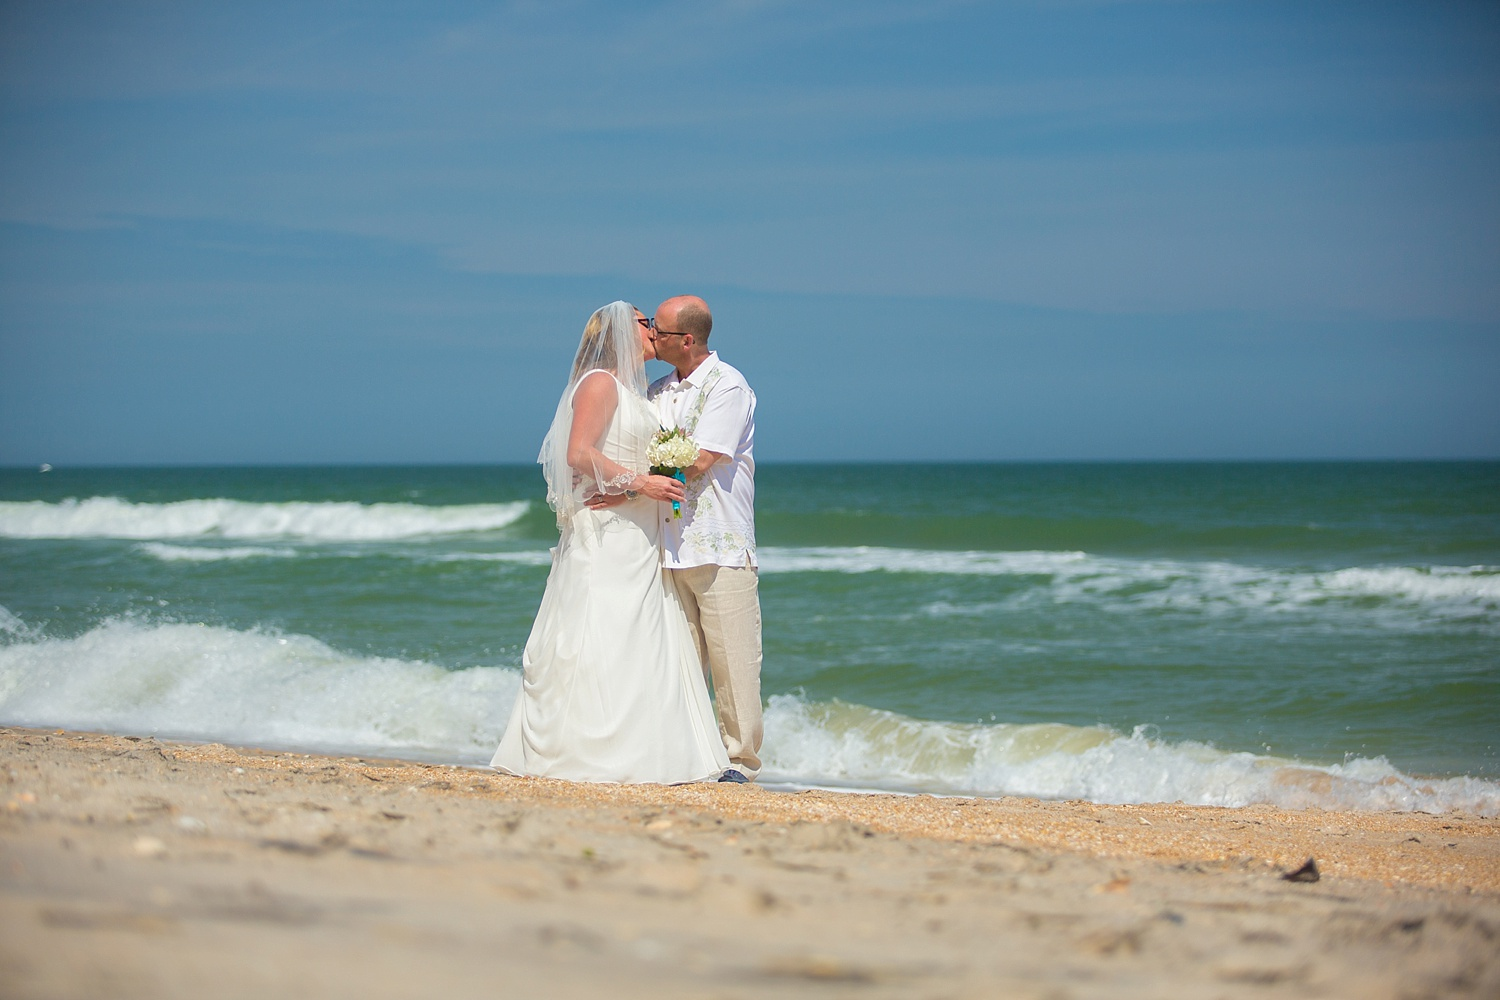 Beach-Elopement-Wedding-Photography-St-Augustine_0004.jpg